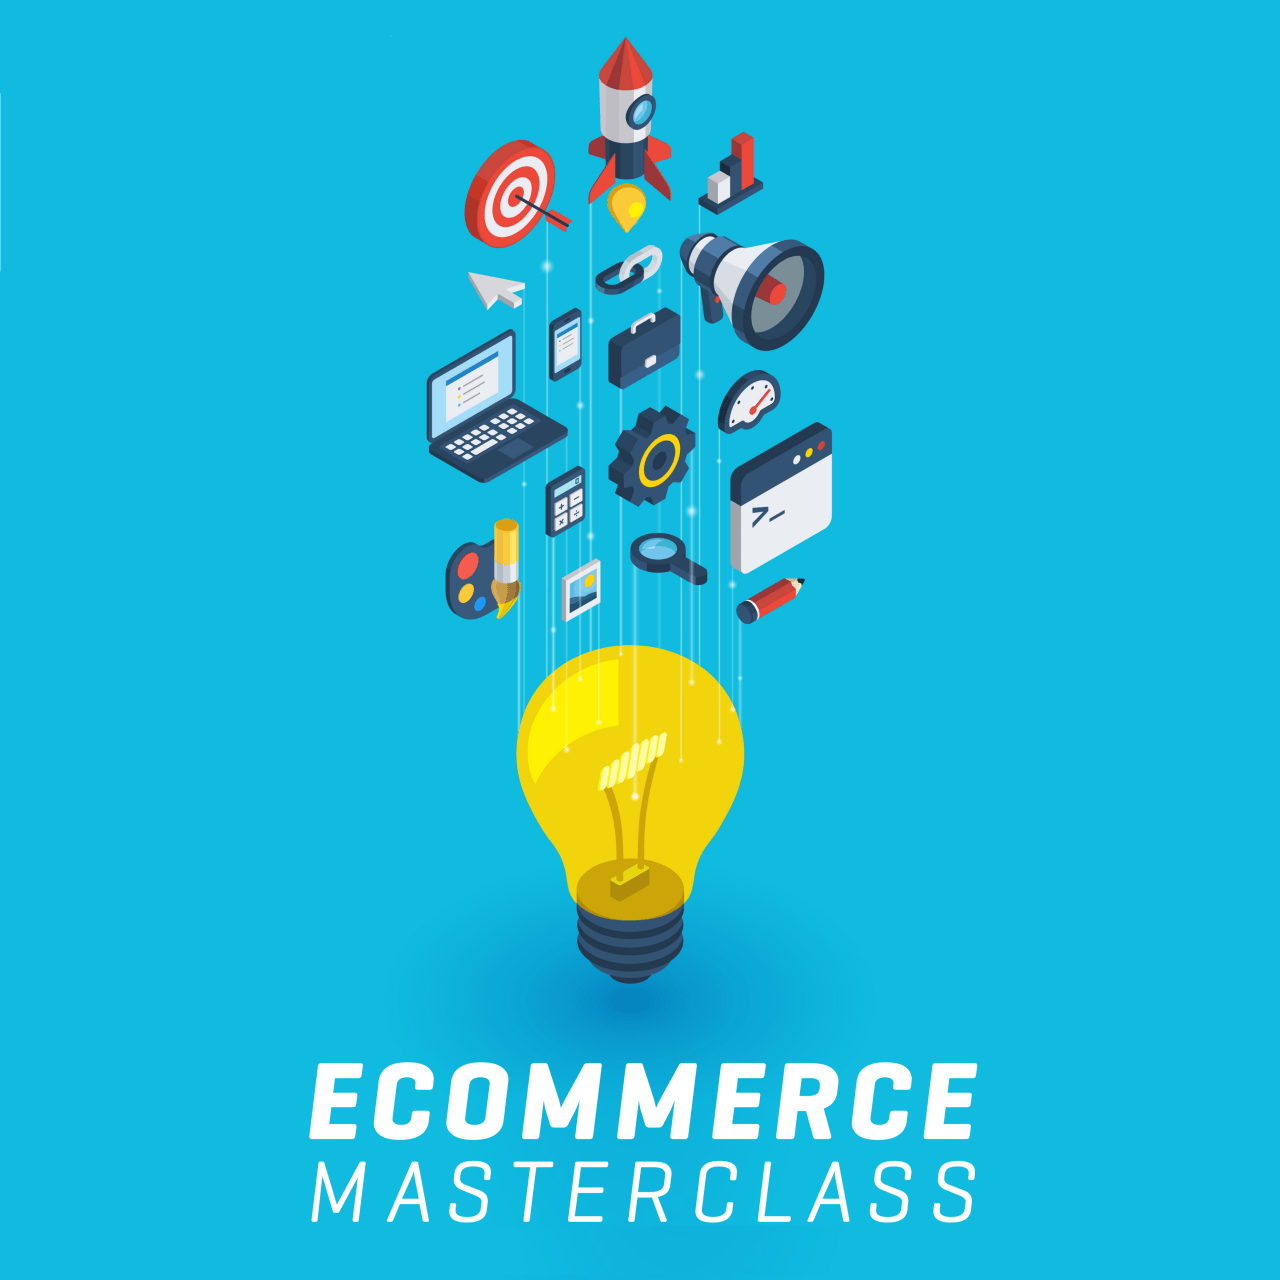 Tony Folly – eCommerce Masterclass-How To Build An Online Business 2019